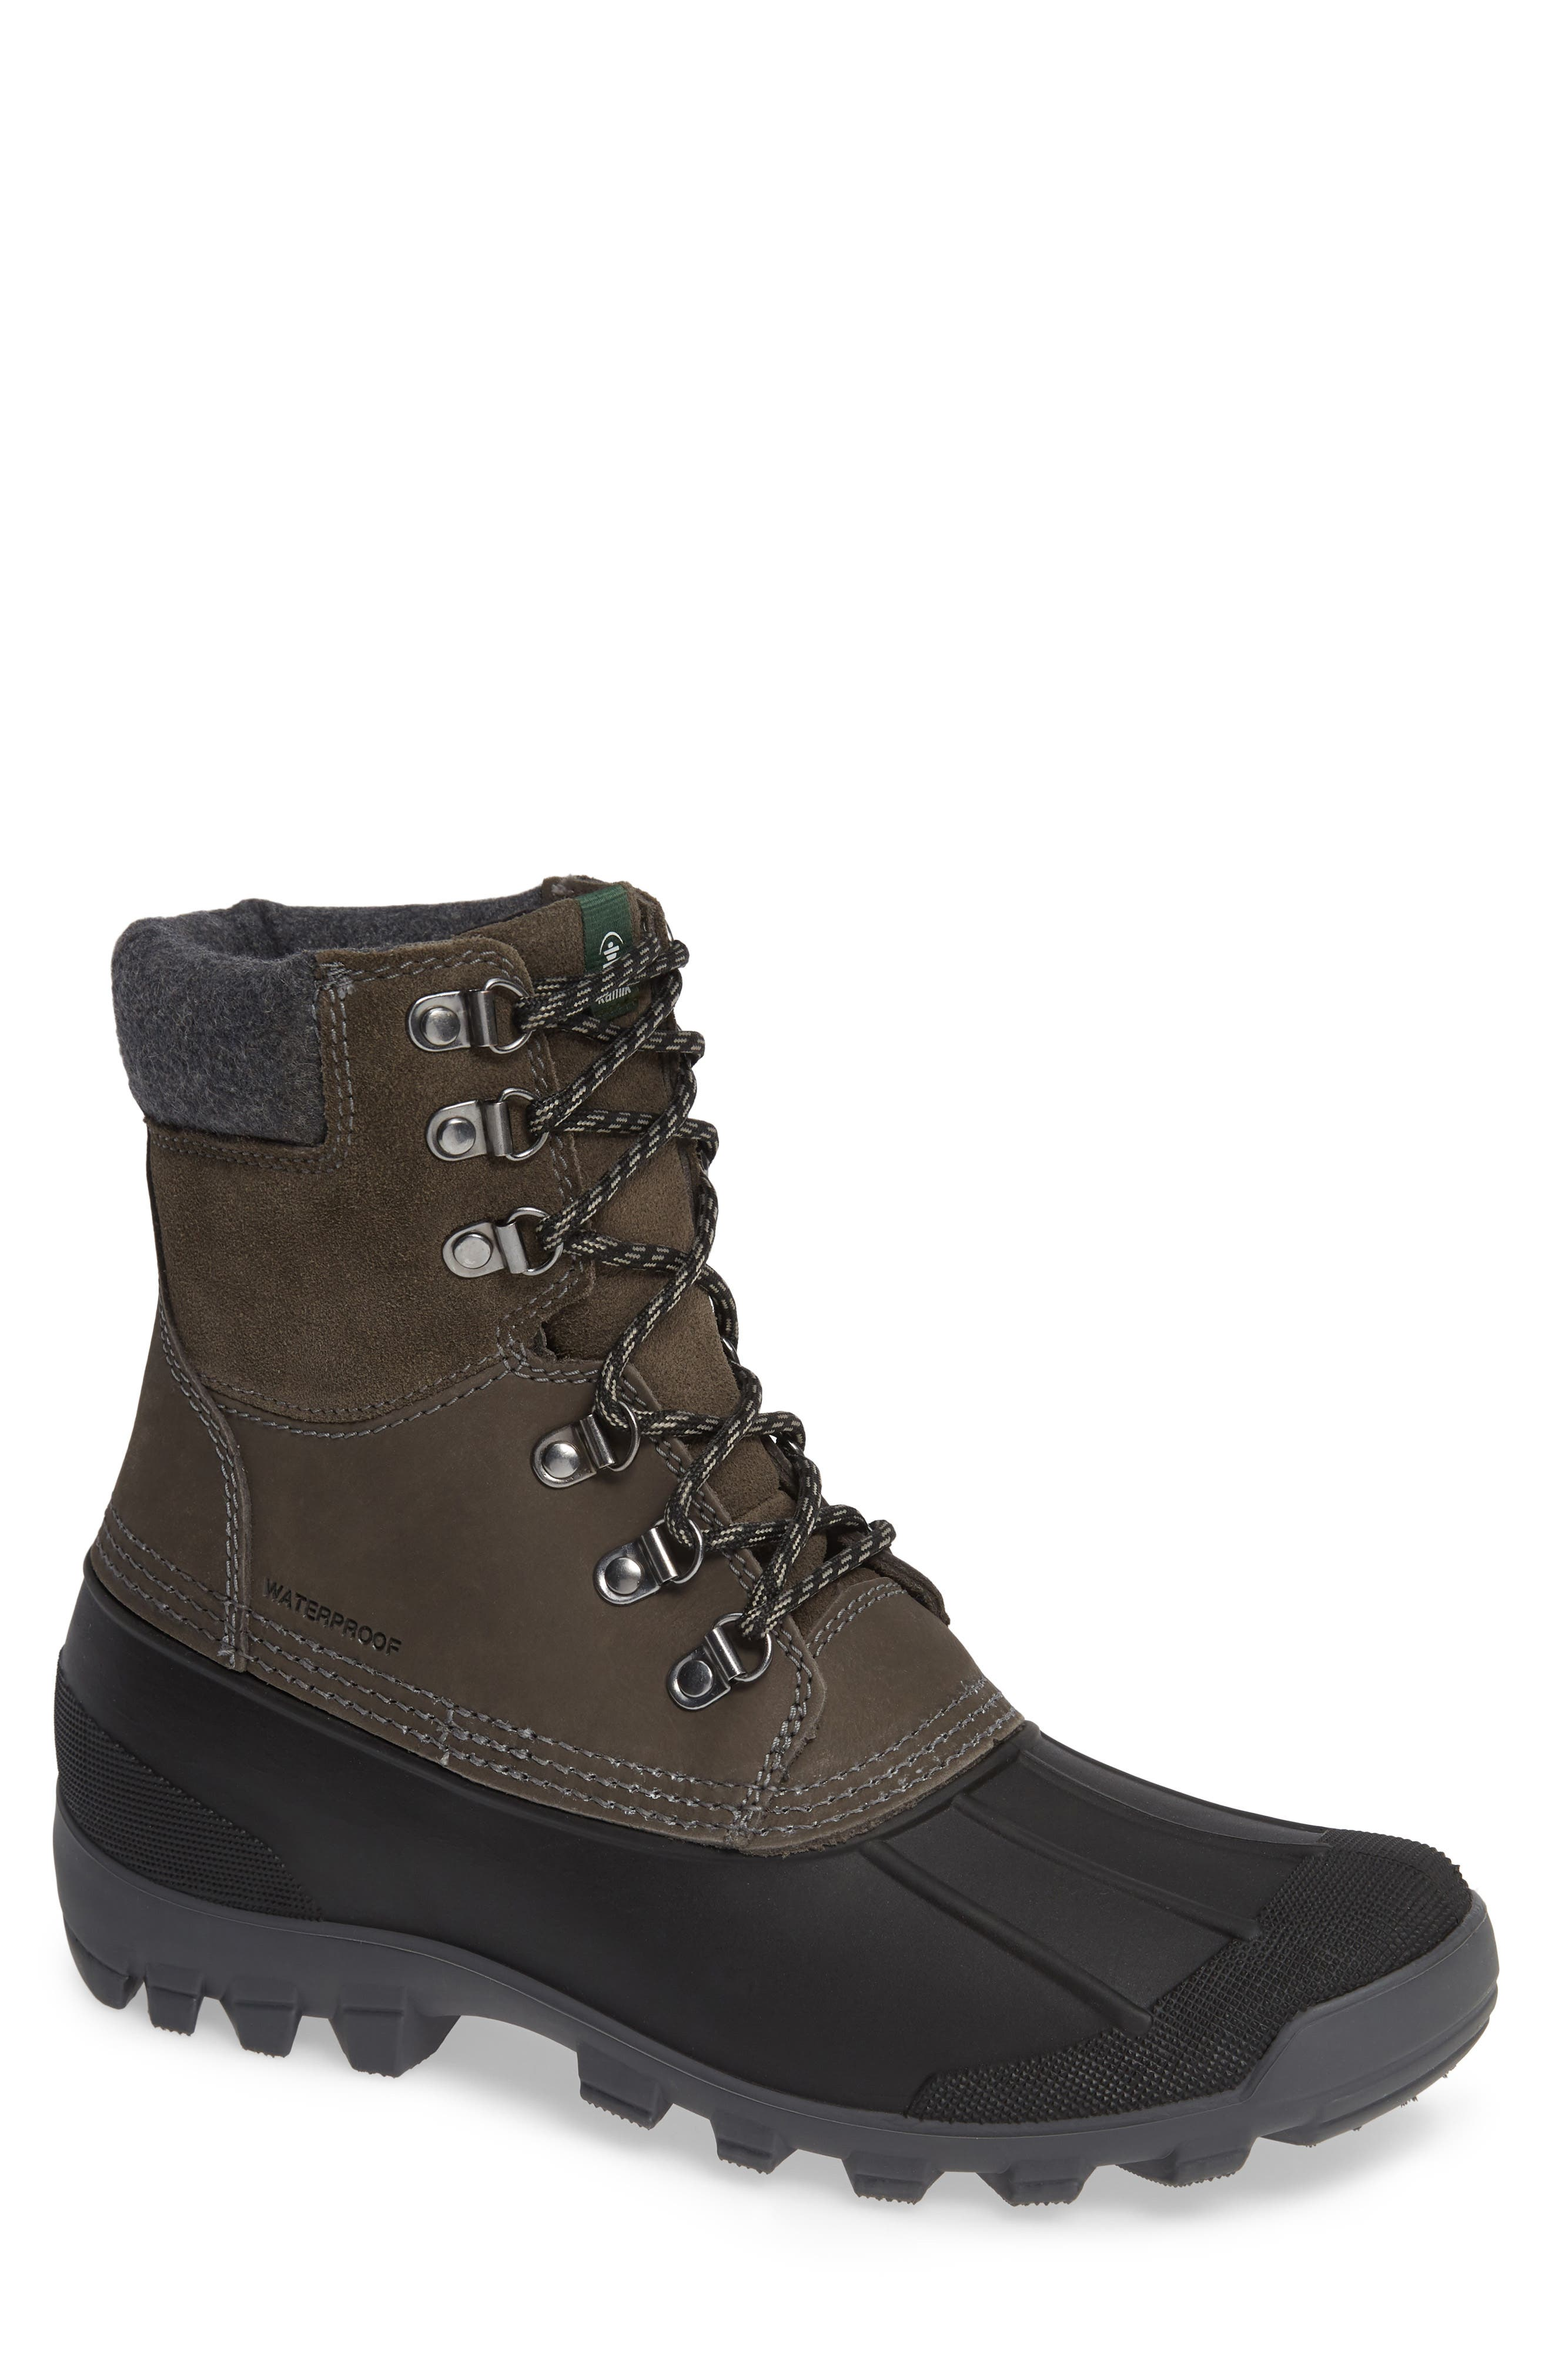 Hudson 5 Boot,                         Main,                         color, CHARCOAL LEATHER